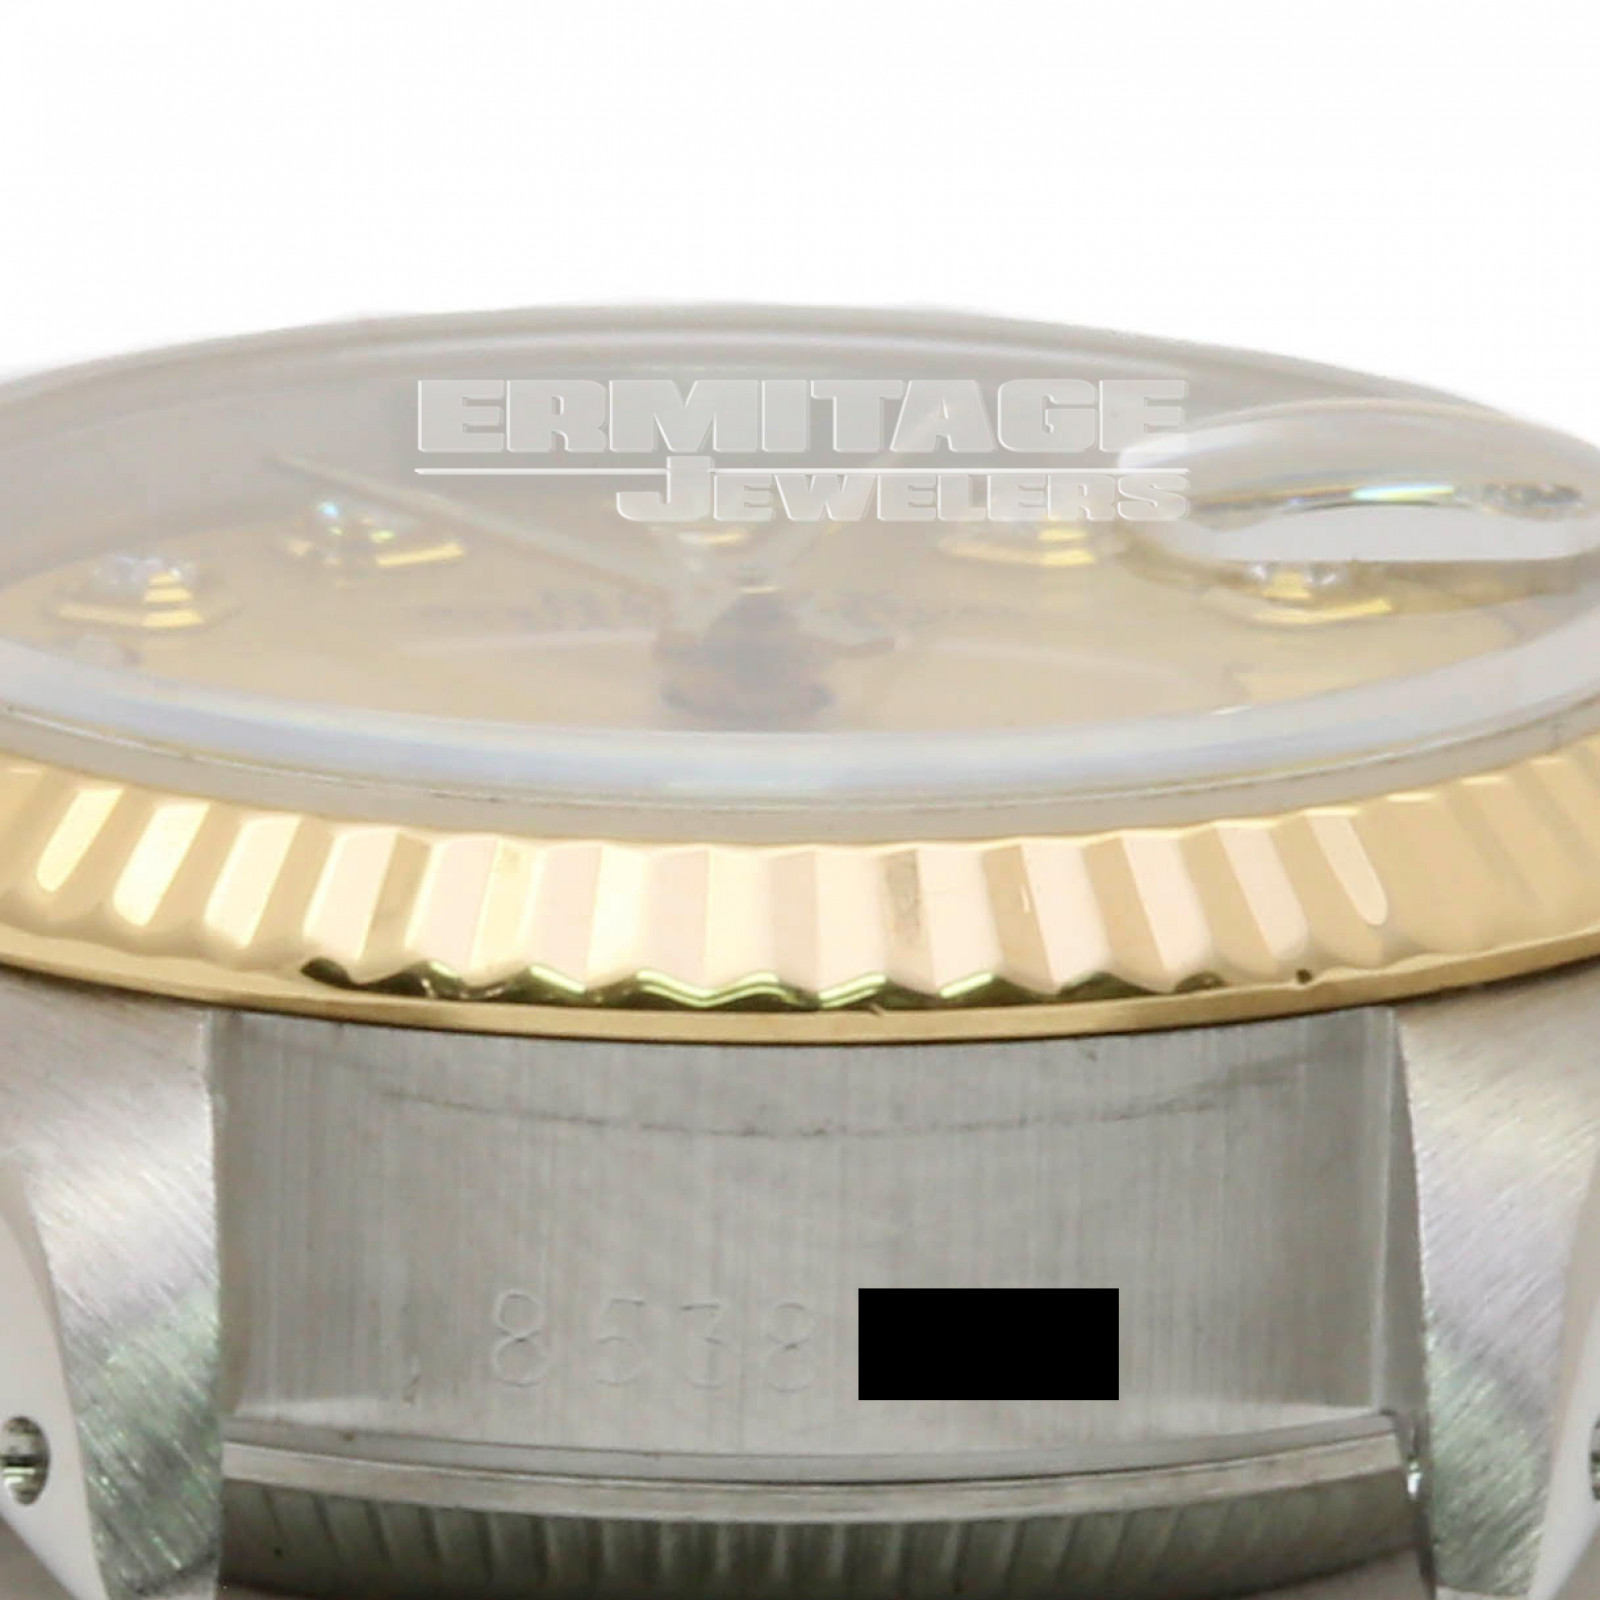 Sell Rolex Datejust 69173 with Champagne Dial